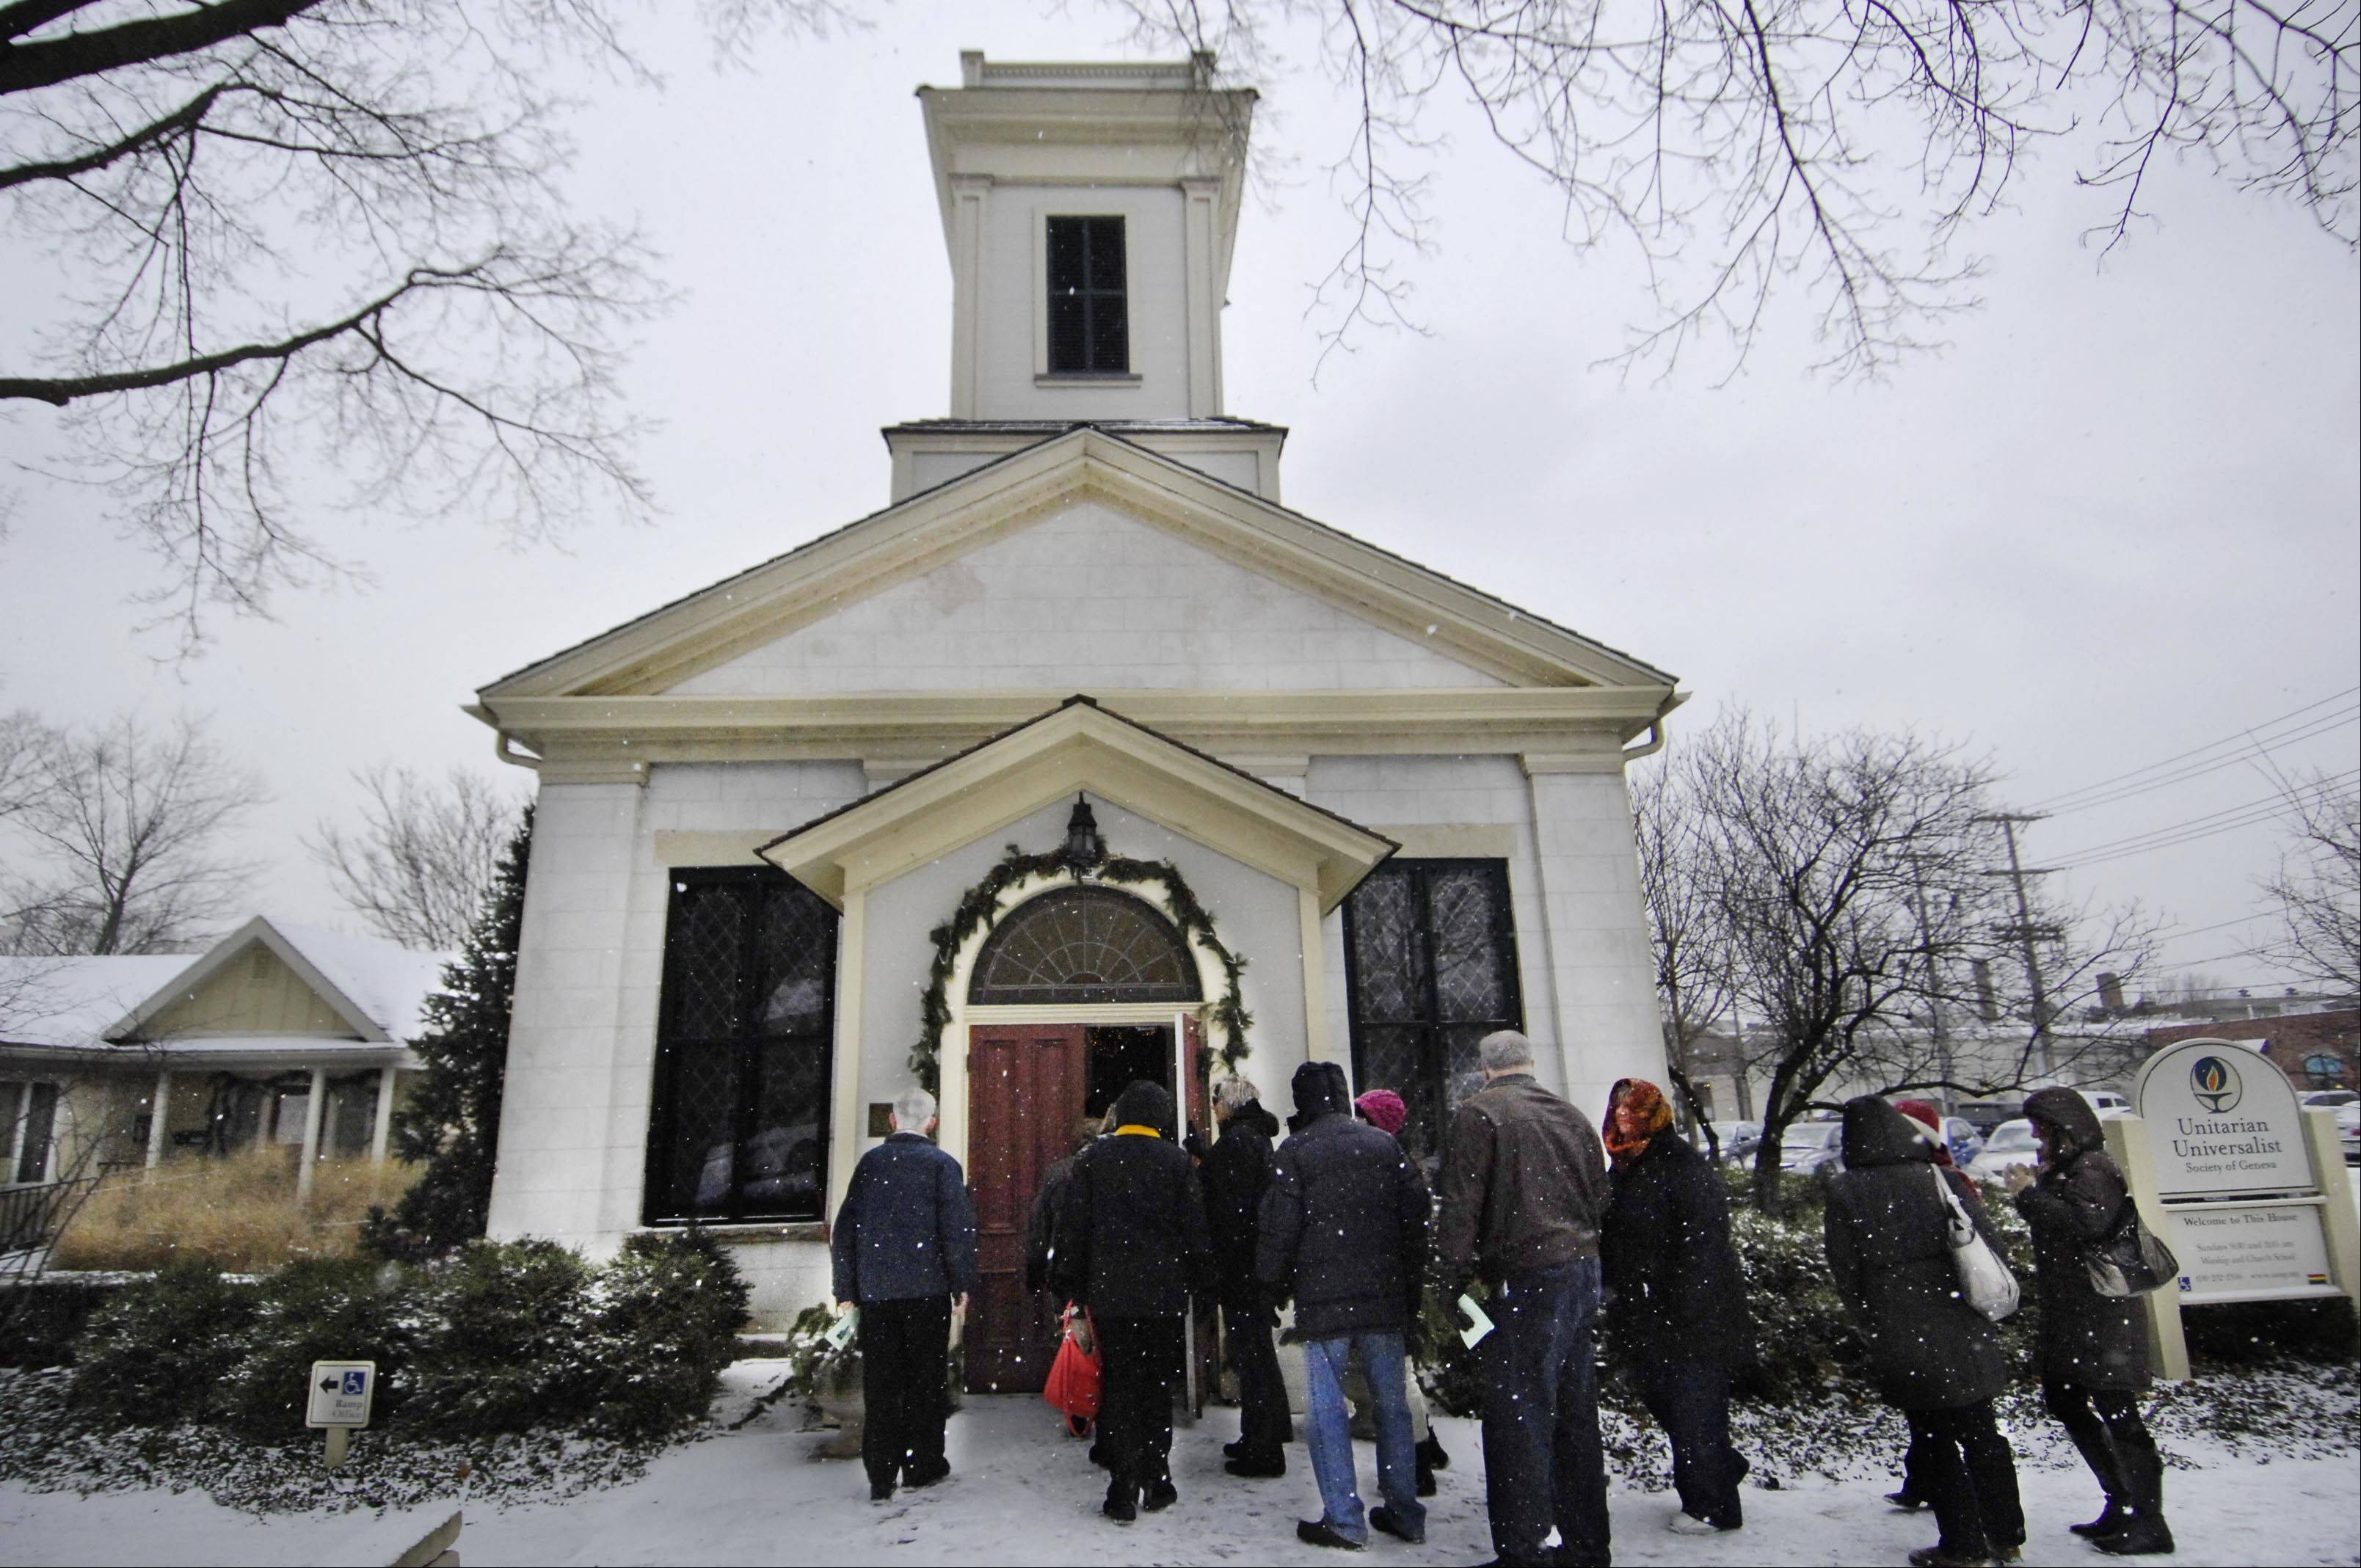 Visitors enter the oldest church in Geneva, the Unitarian Universalist Society, Sunday during the city�s annual Steeple Walk. The Geneva Cultural Arts Commission sponsors the event, in which participants visit four city churches and enjoy musical performances at each.